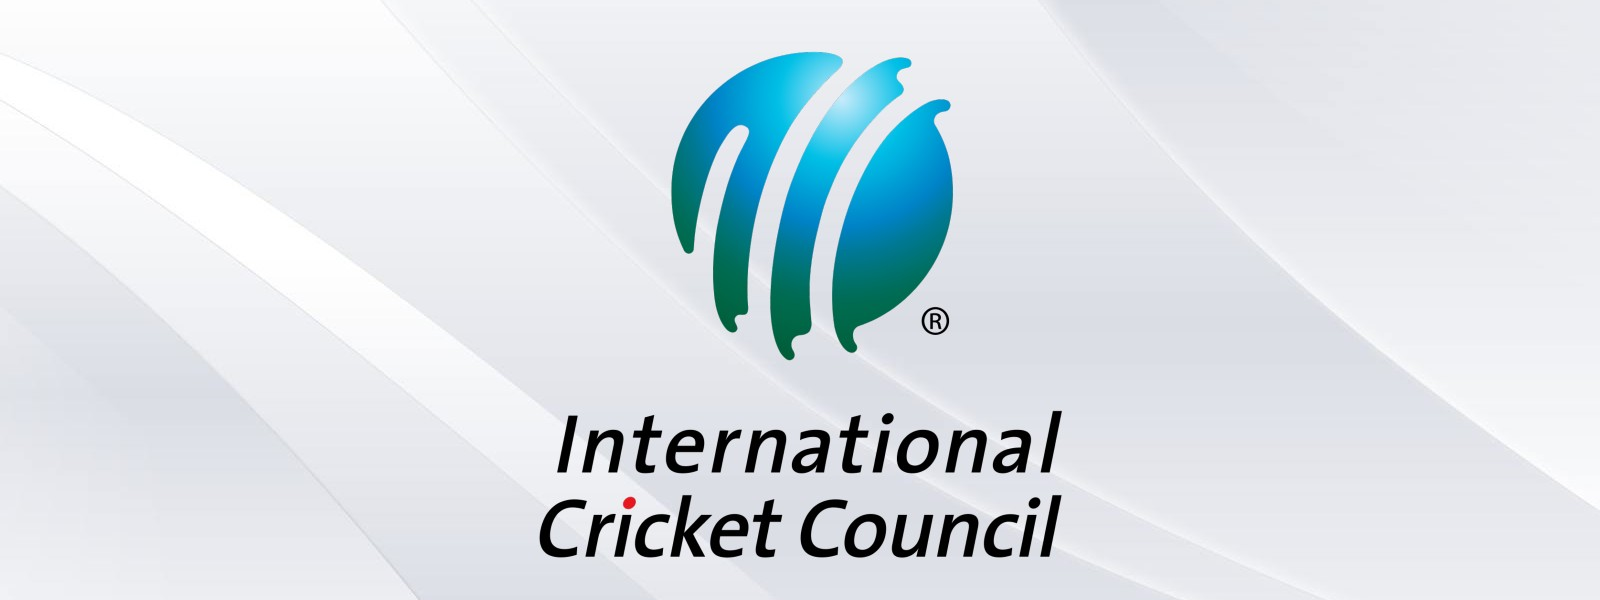 ICC Men's T20 World Cup shifted to UAE, Oman